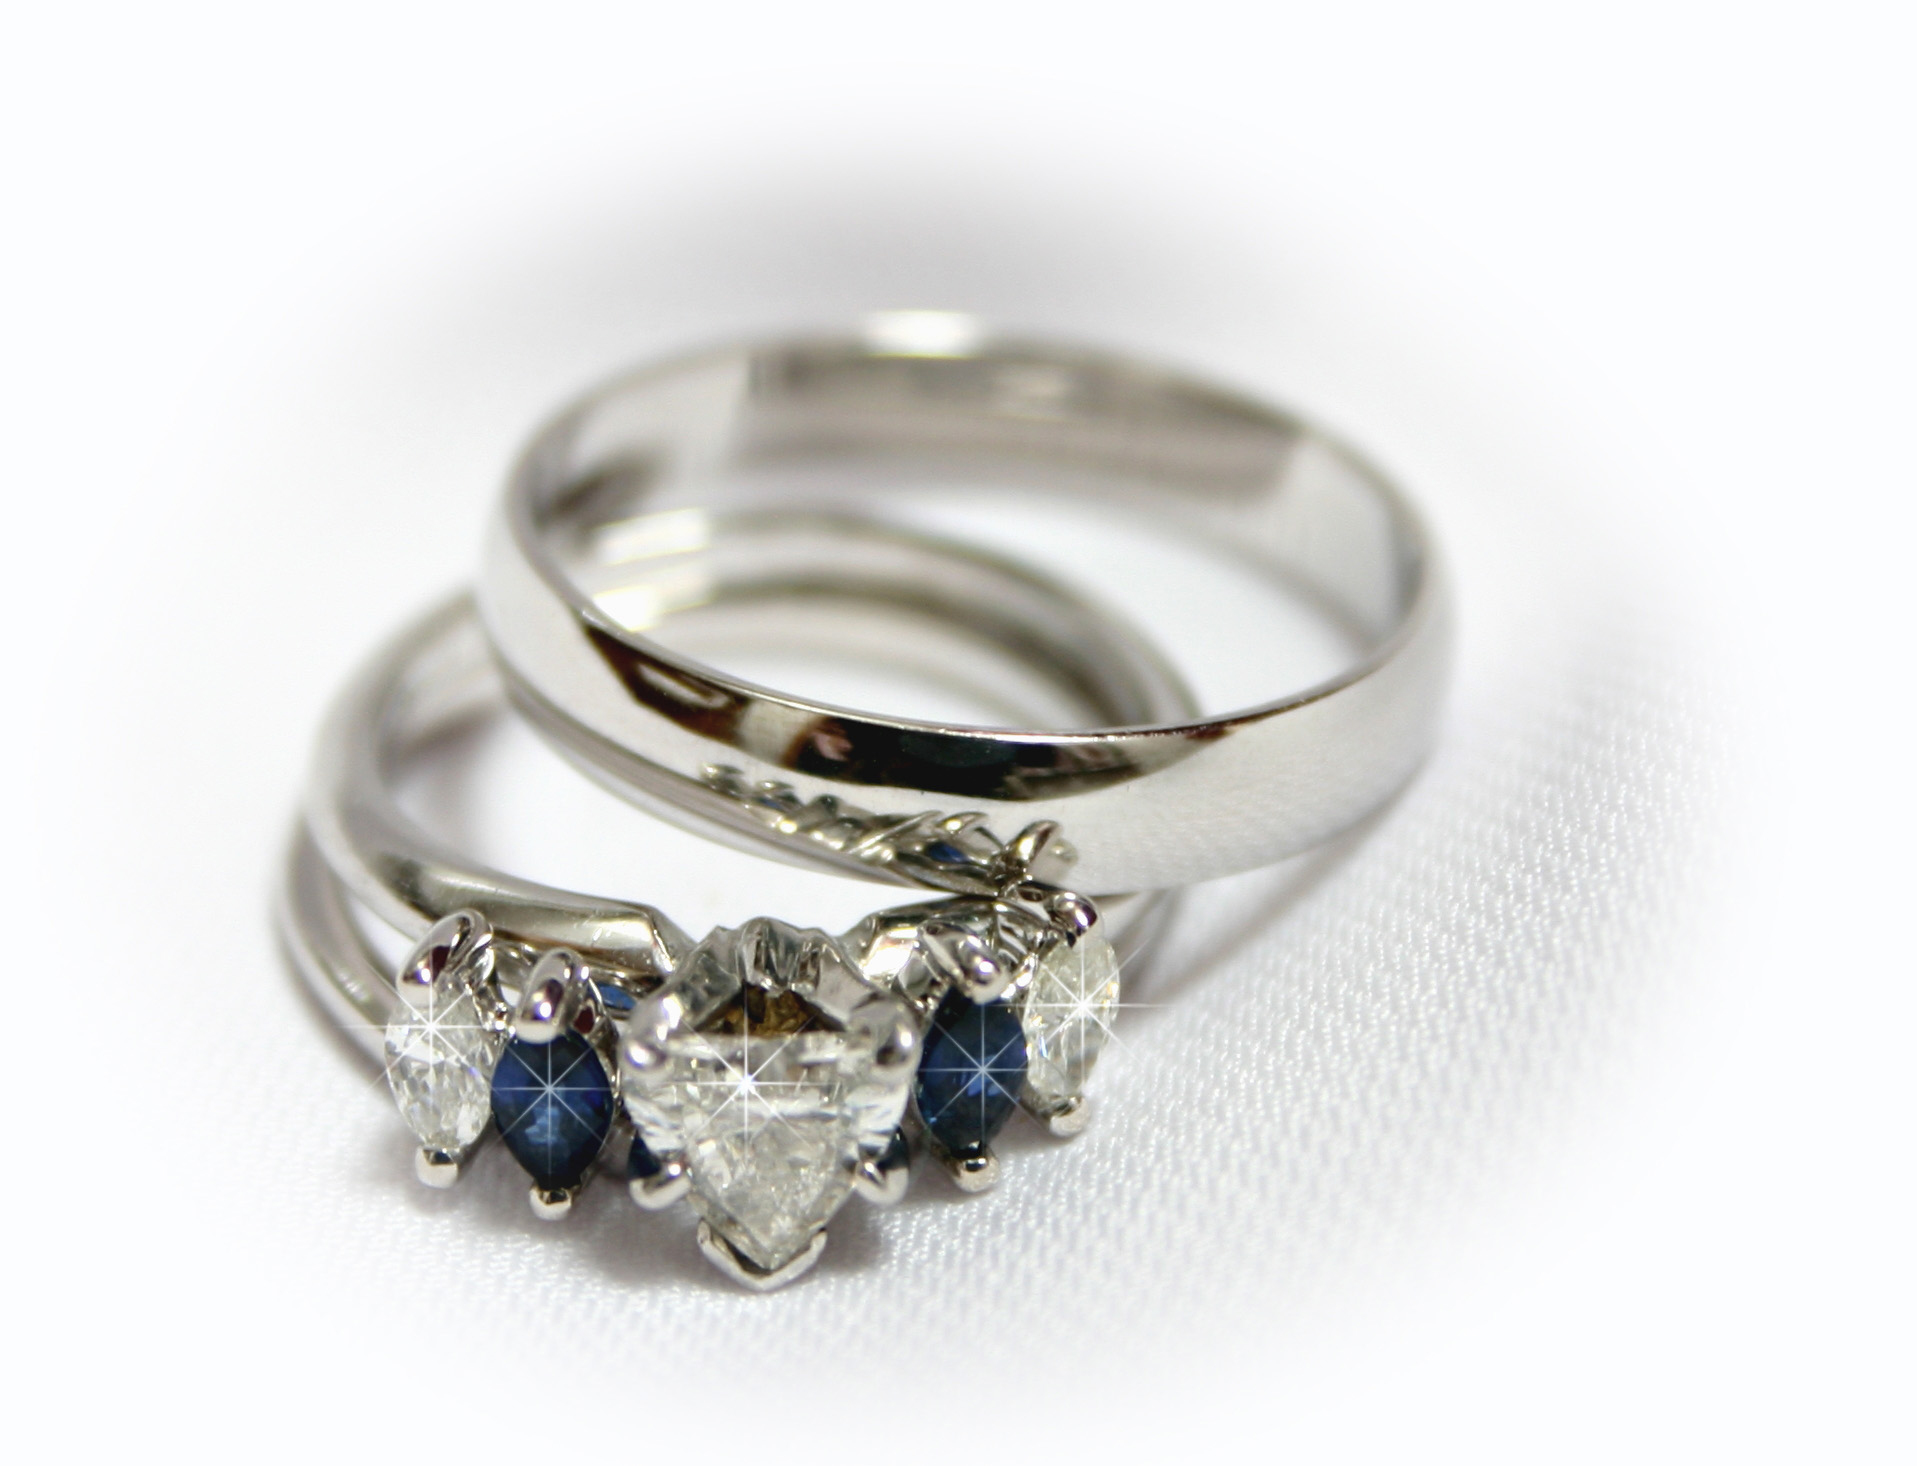 Pics Of Wedding Ring.What Wedding Ring Options Besides Gold Can I Choose For My Husband